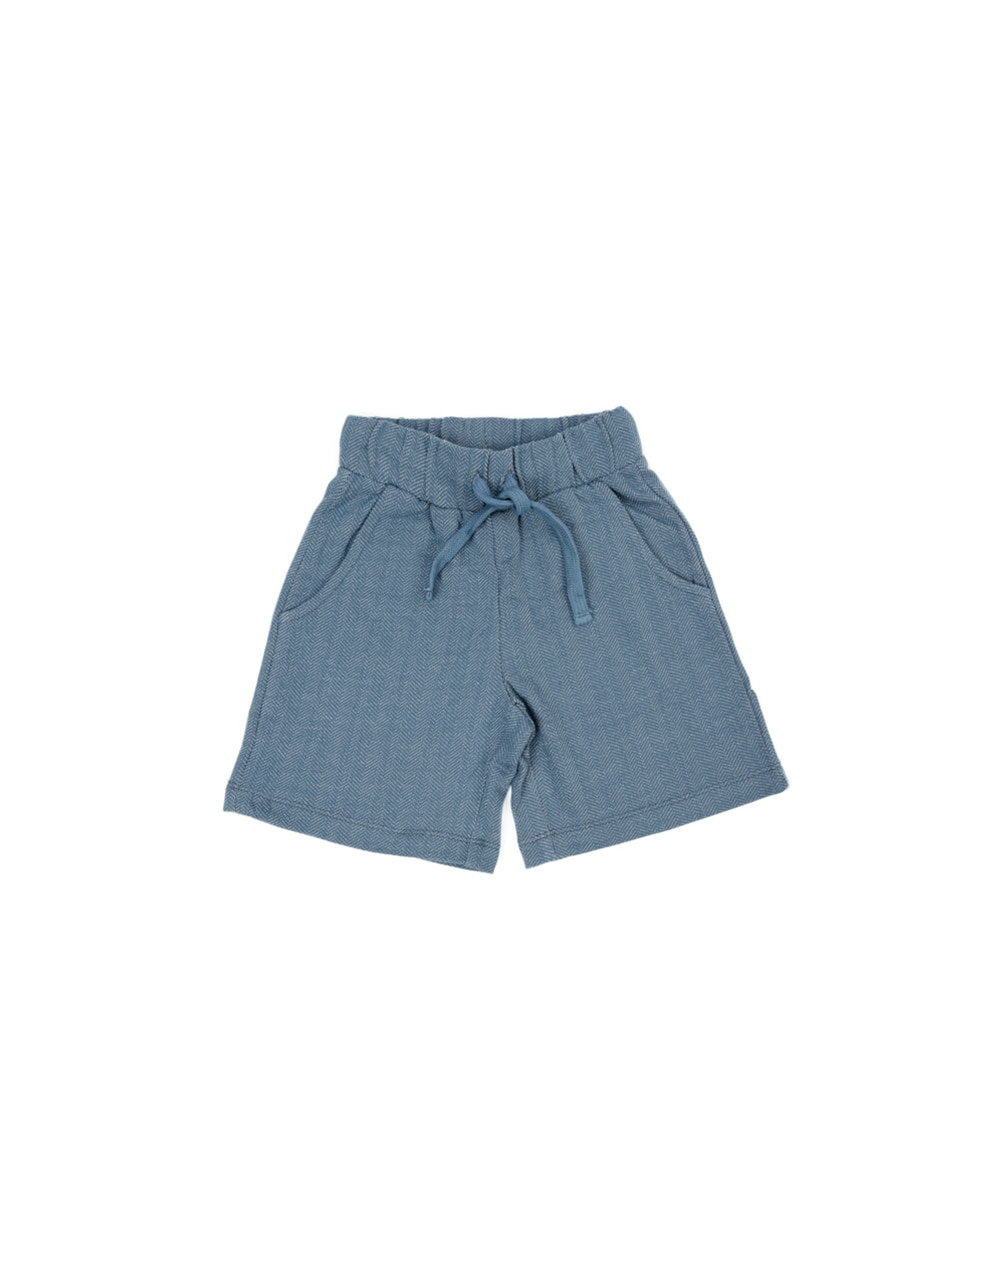 LILY BALOU  Levi Shorts  Real Teal